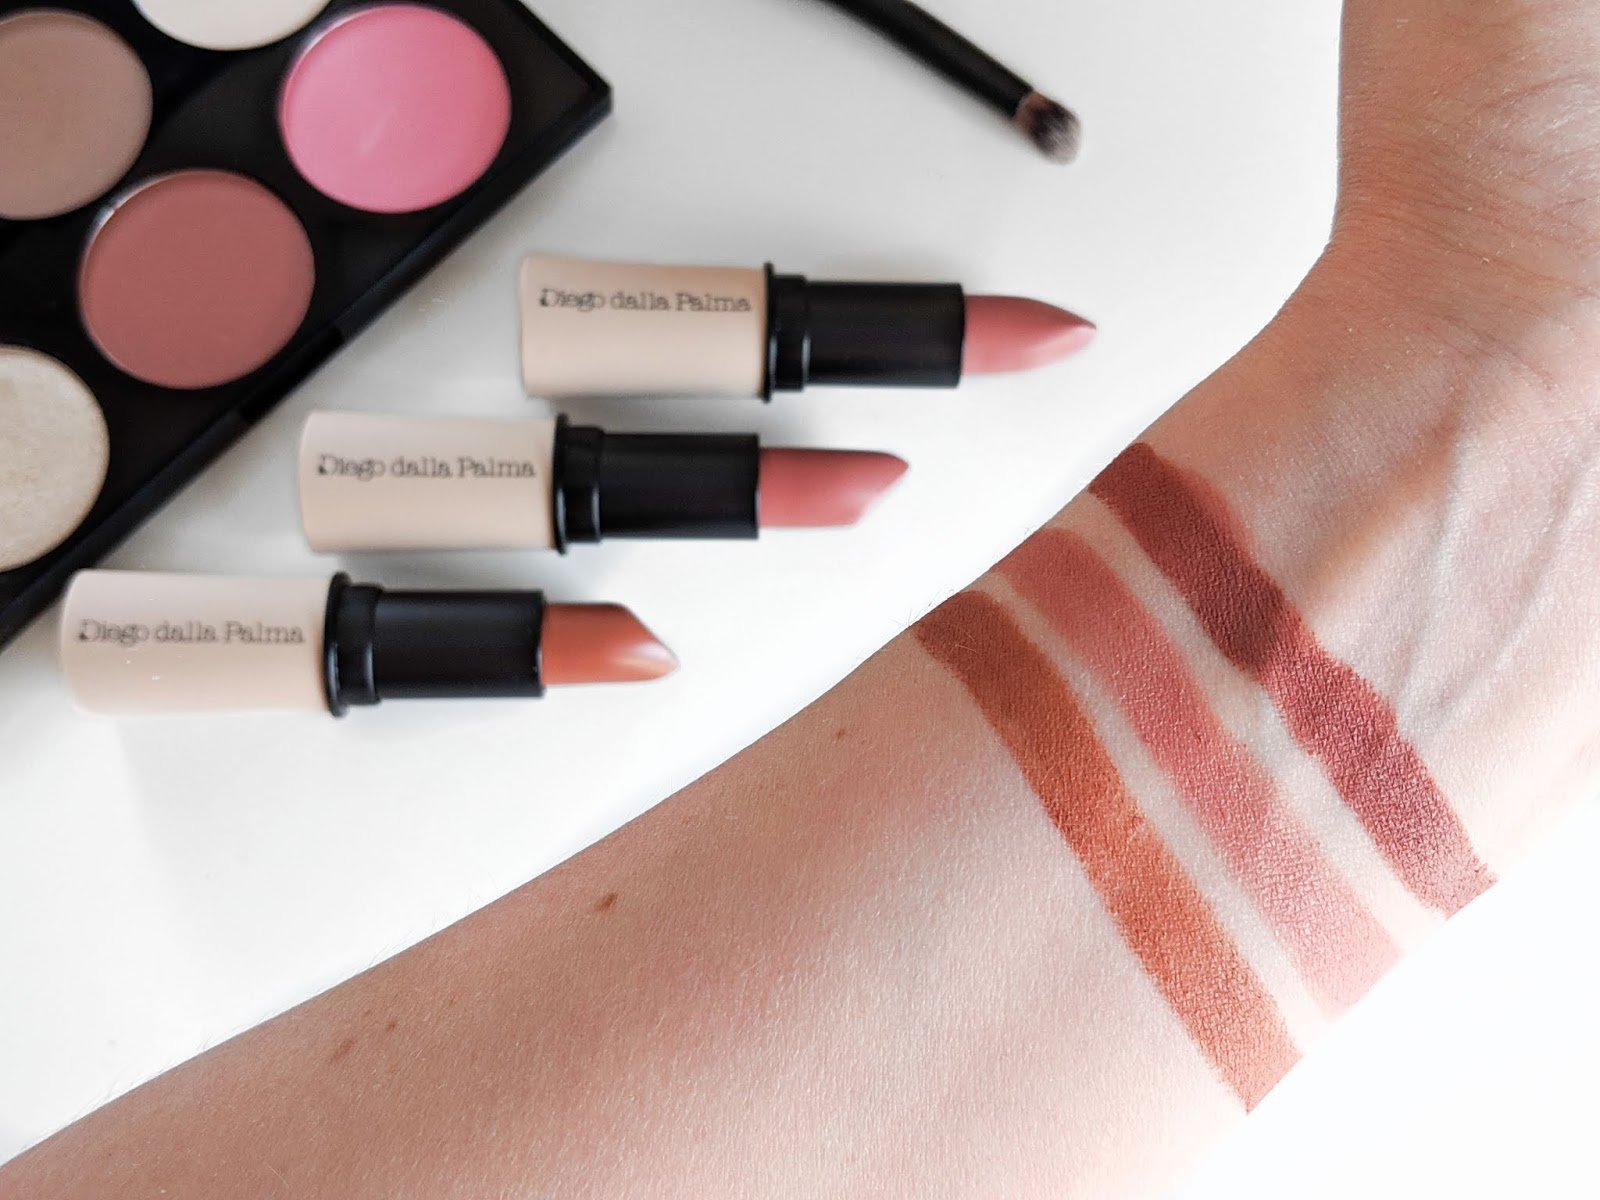 Image showing swatches of three shades of Diego Dalla Palma Nudissimo Lipsticks